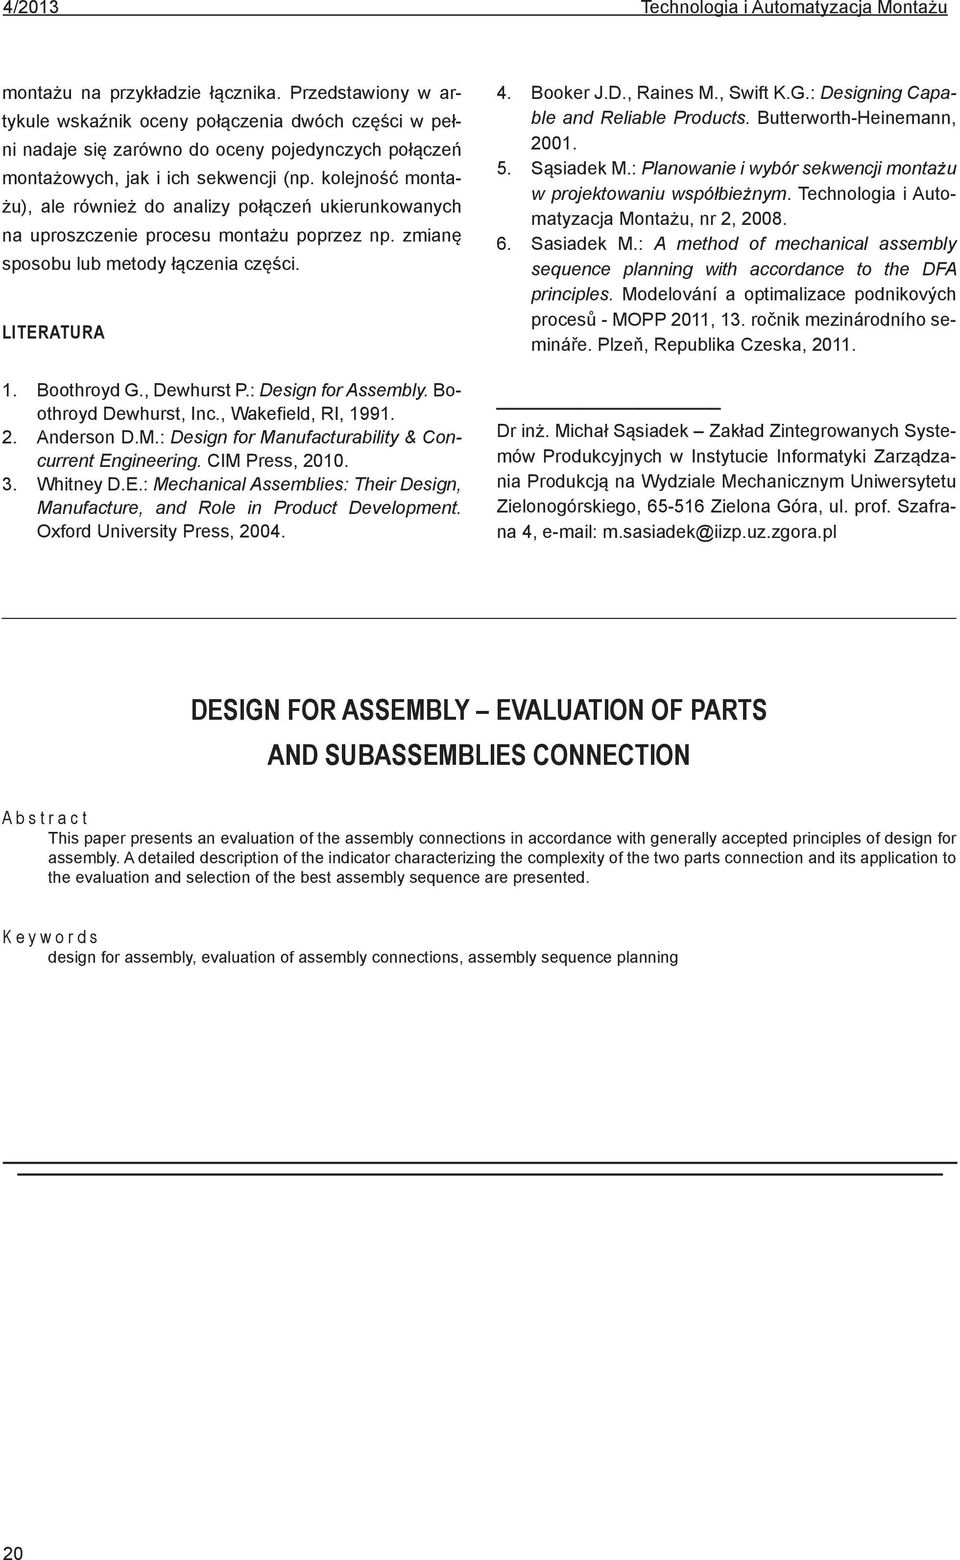 : Design for Assembly. Boothroyd Dewhurst, Inc., Wakefield, RI, 1991. 2. Anderson D.M.: Design for Manufacturability & Concurrent En